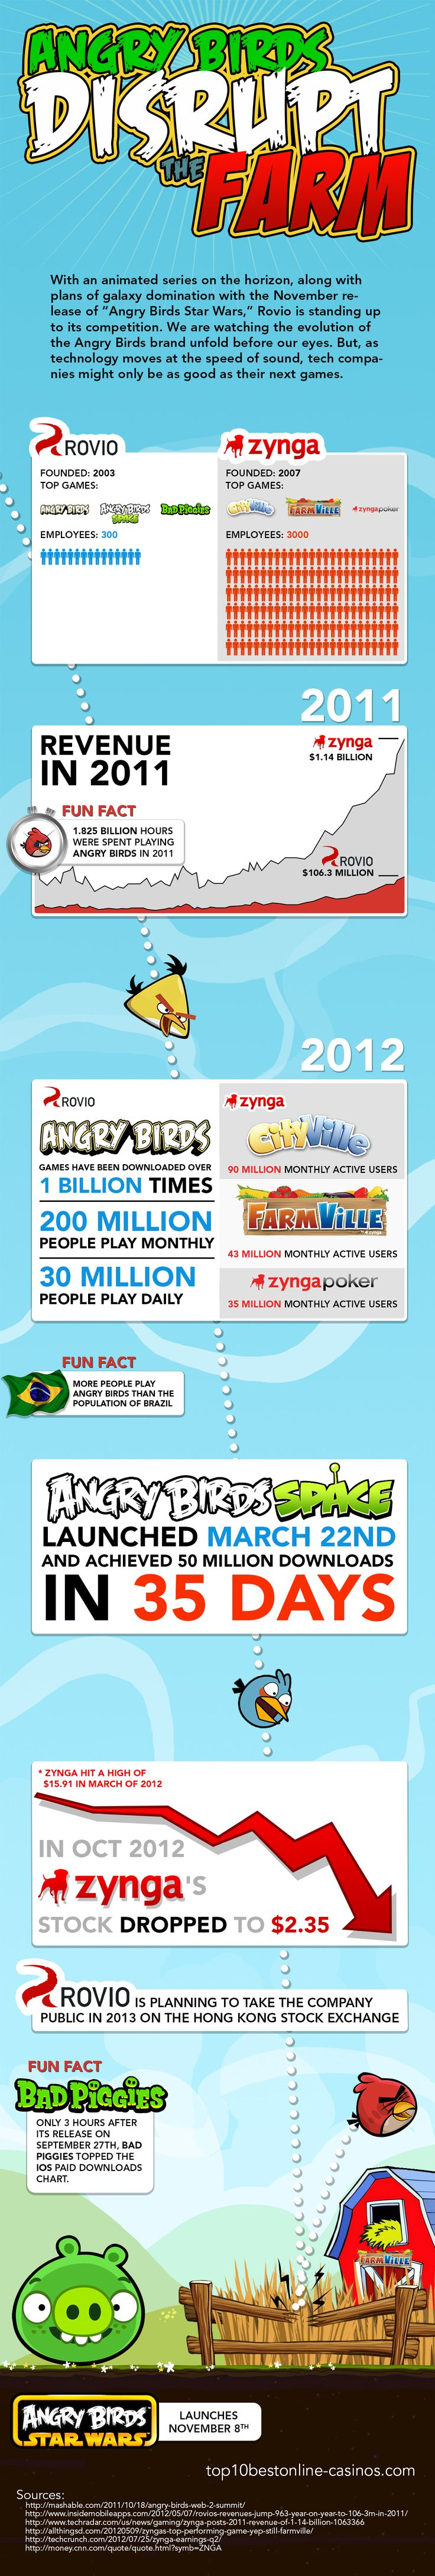 Check out the infographic below, and see how Angry Birds has evolved since its conception.  This is one game franchise worth paying attention to.